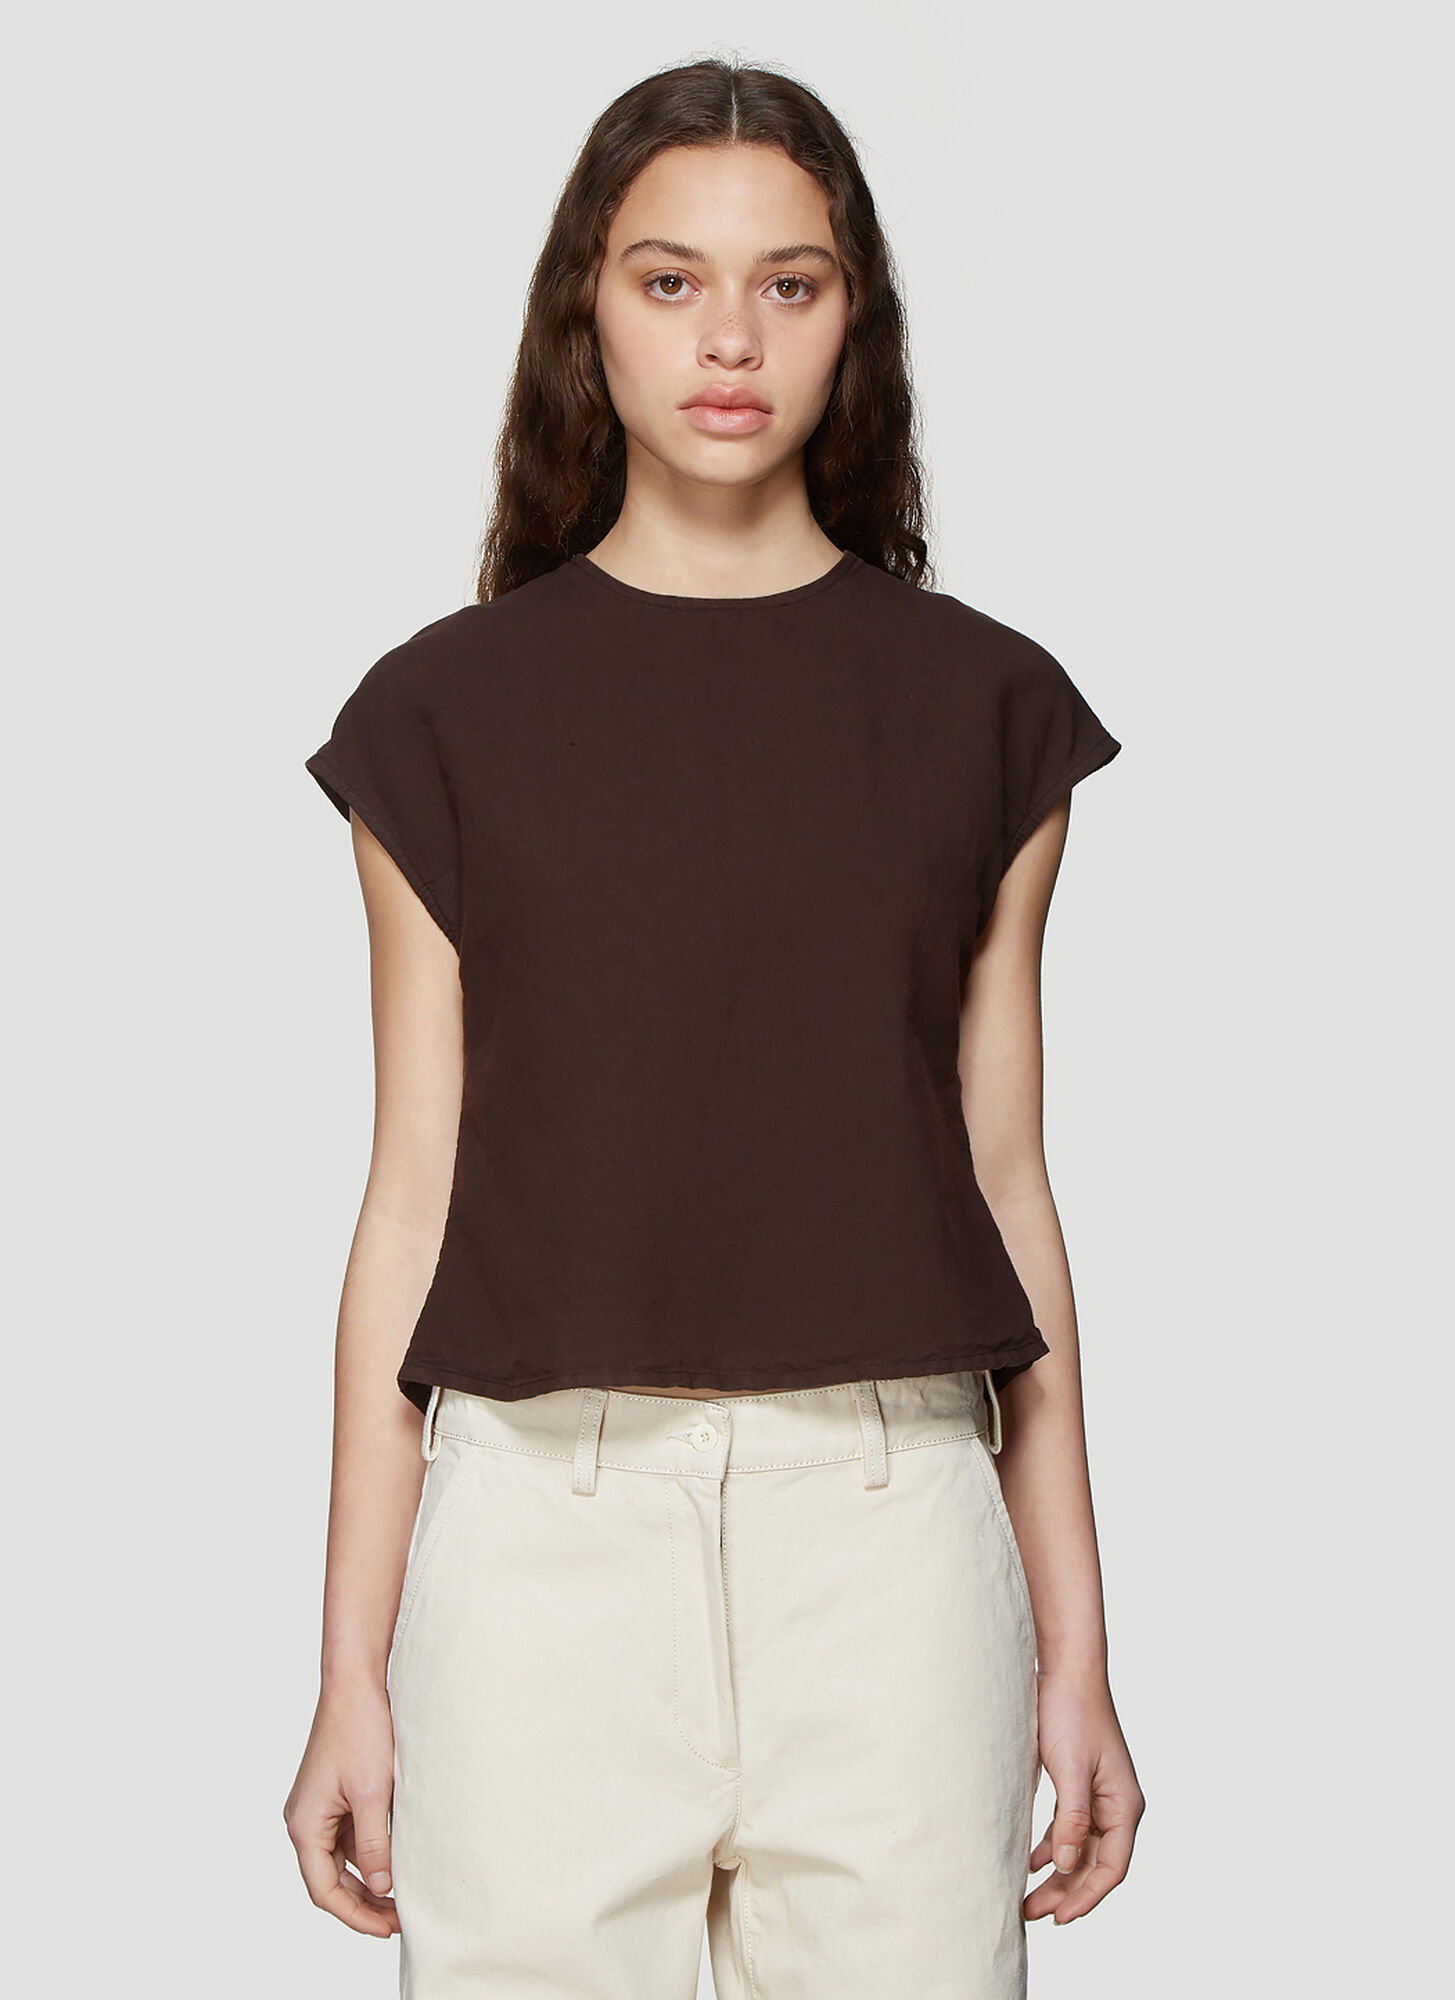 Our Legacy Cafe Serre Top in Brown